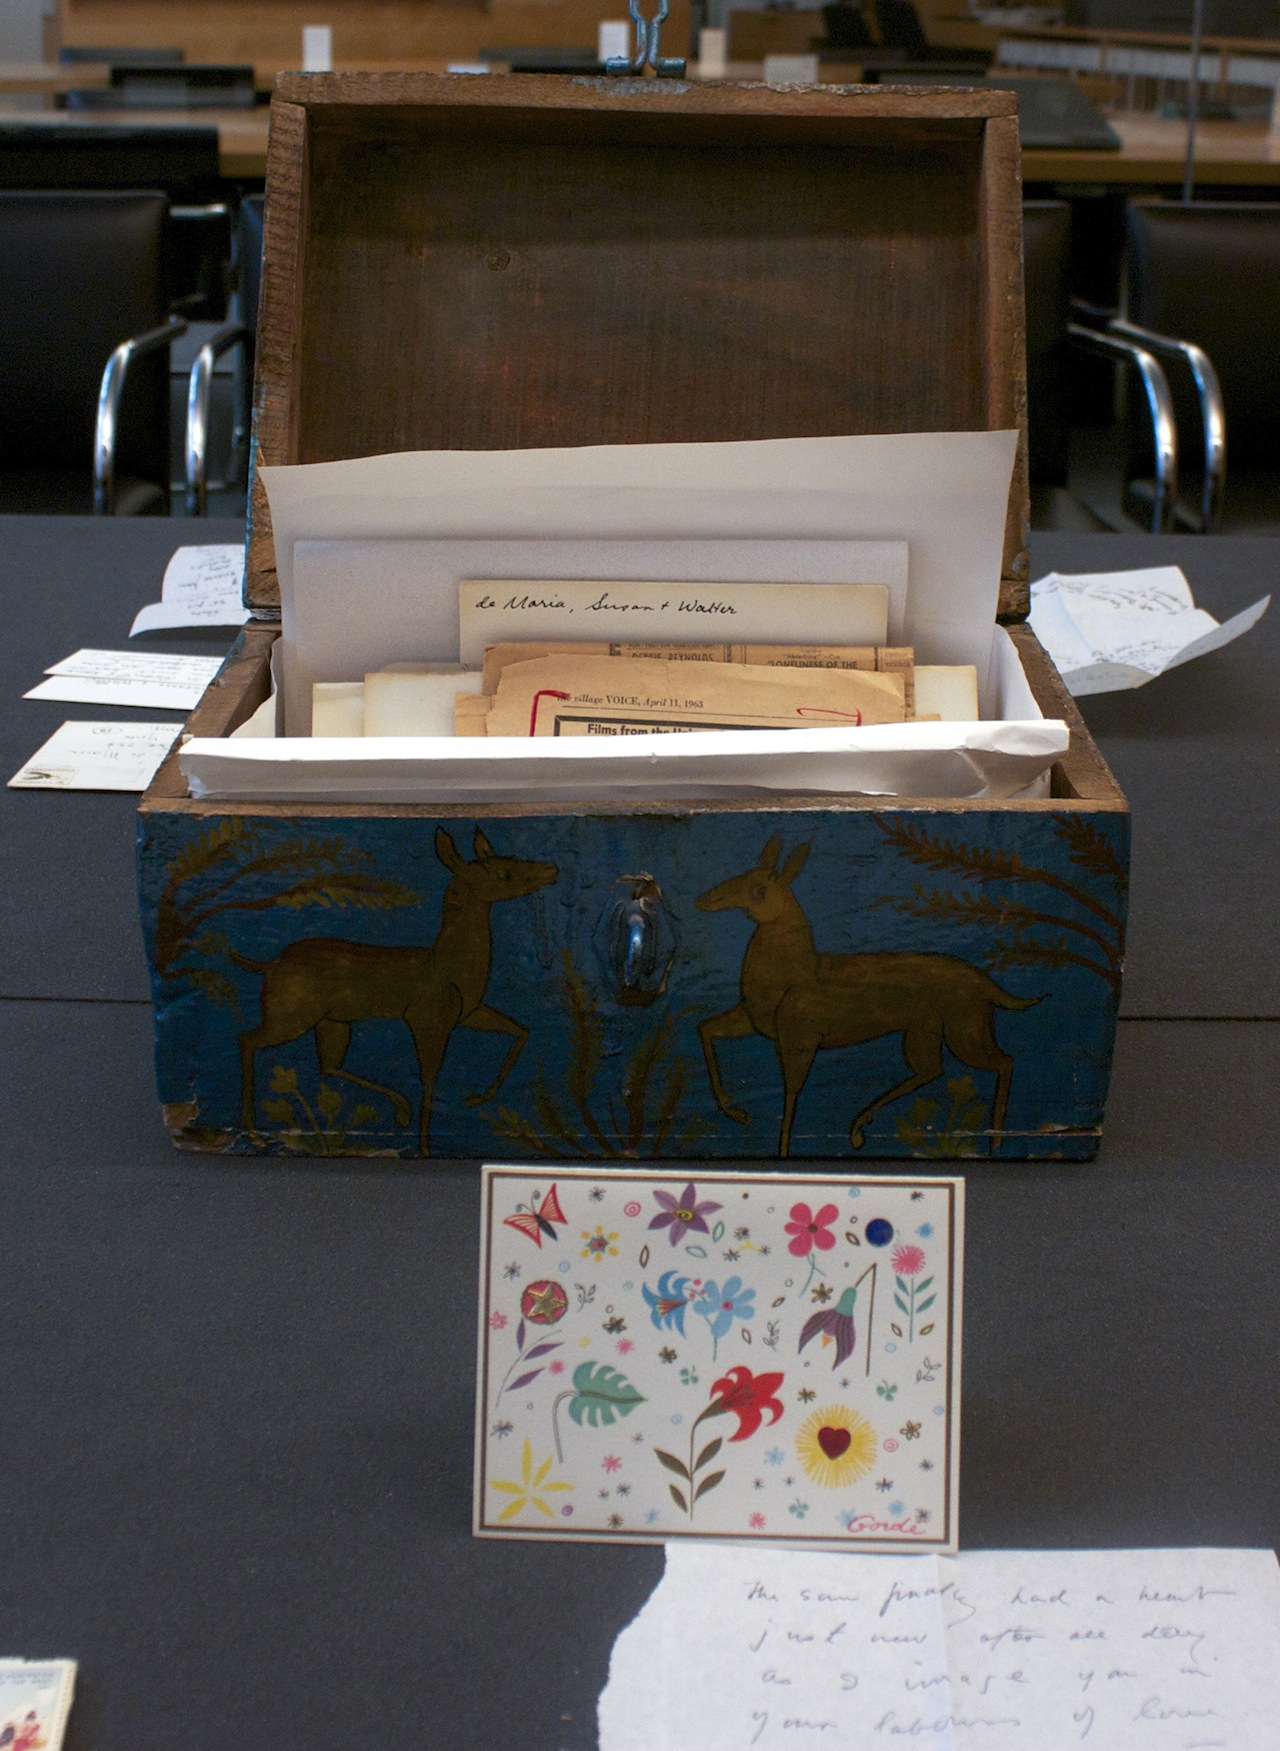 Joseph Cornell saw this wooden box in a Manhattan flea market and gave Susanna De Maria Wilson the money to purchase. It holds his correspondence, and in front of the box is a card dated March 20, 1963. (Image courtesy of the Getty Research Institute, Los Angeles)